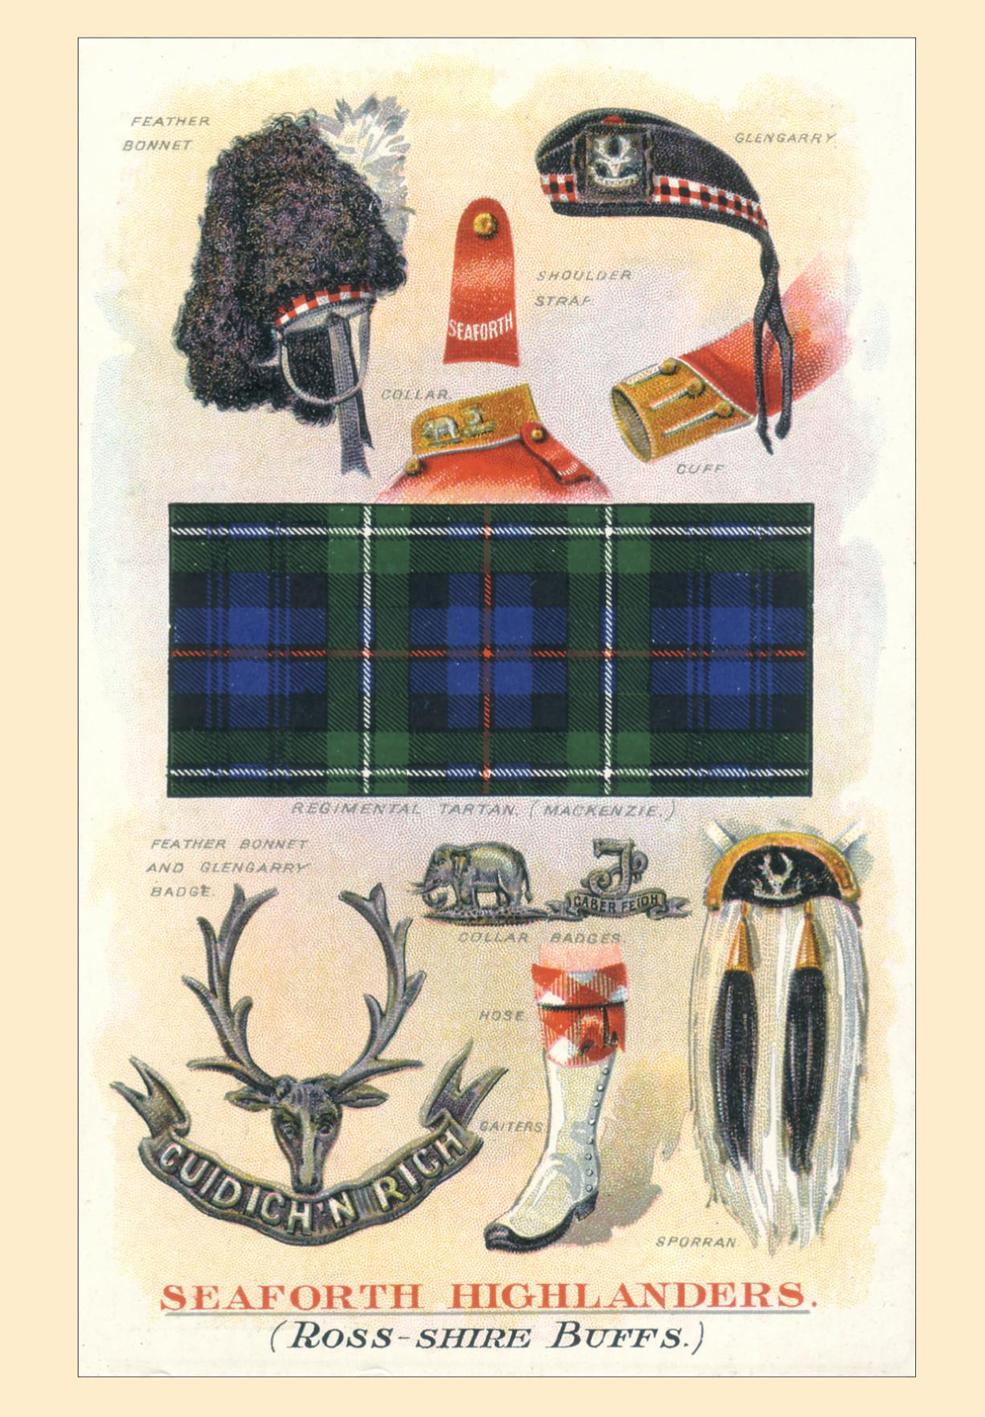 Seaforth Highlanders Postcard